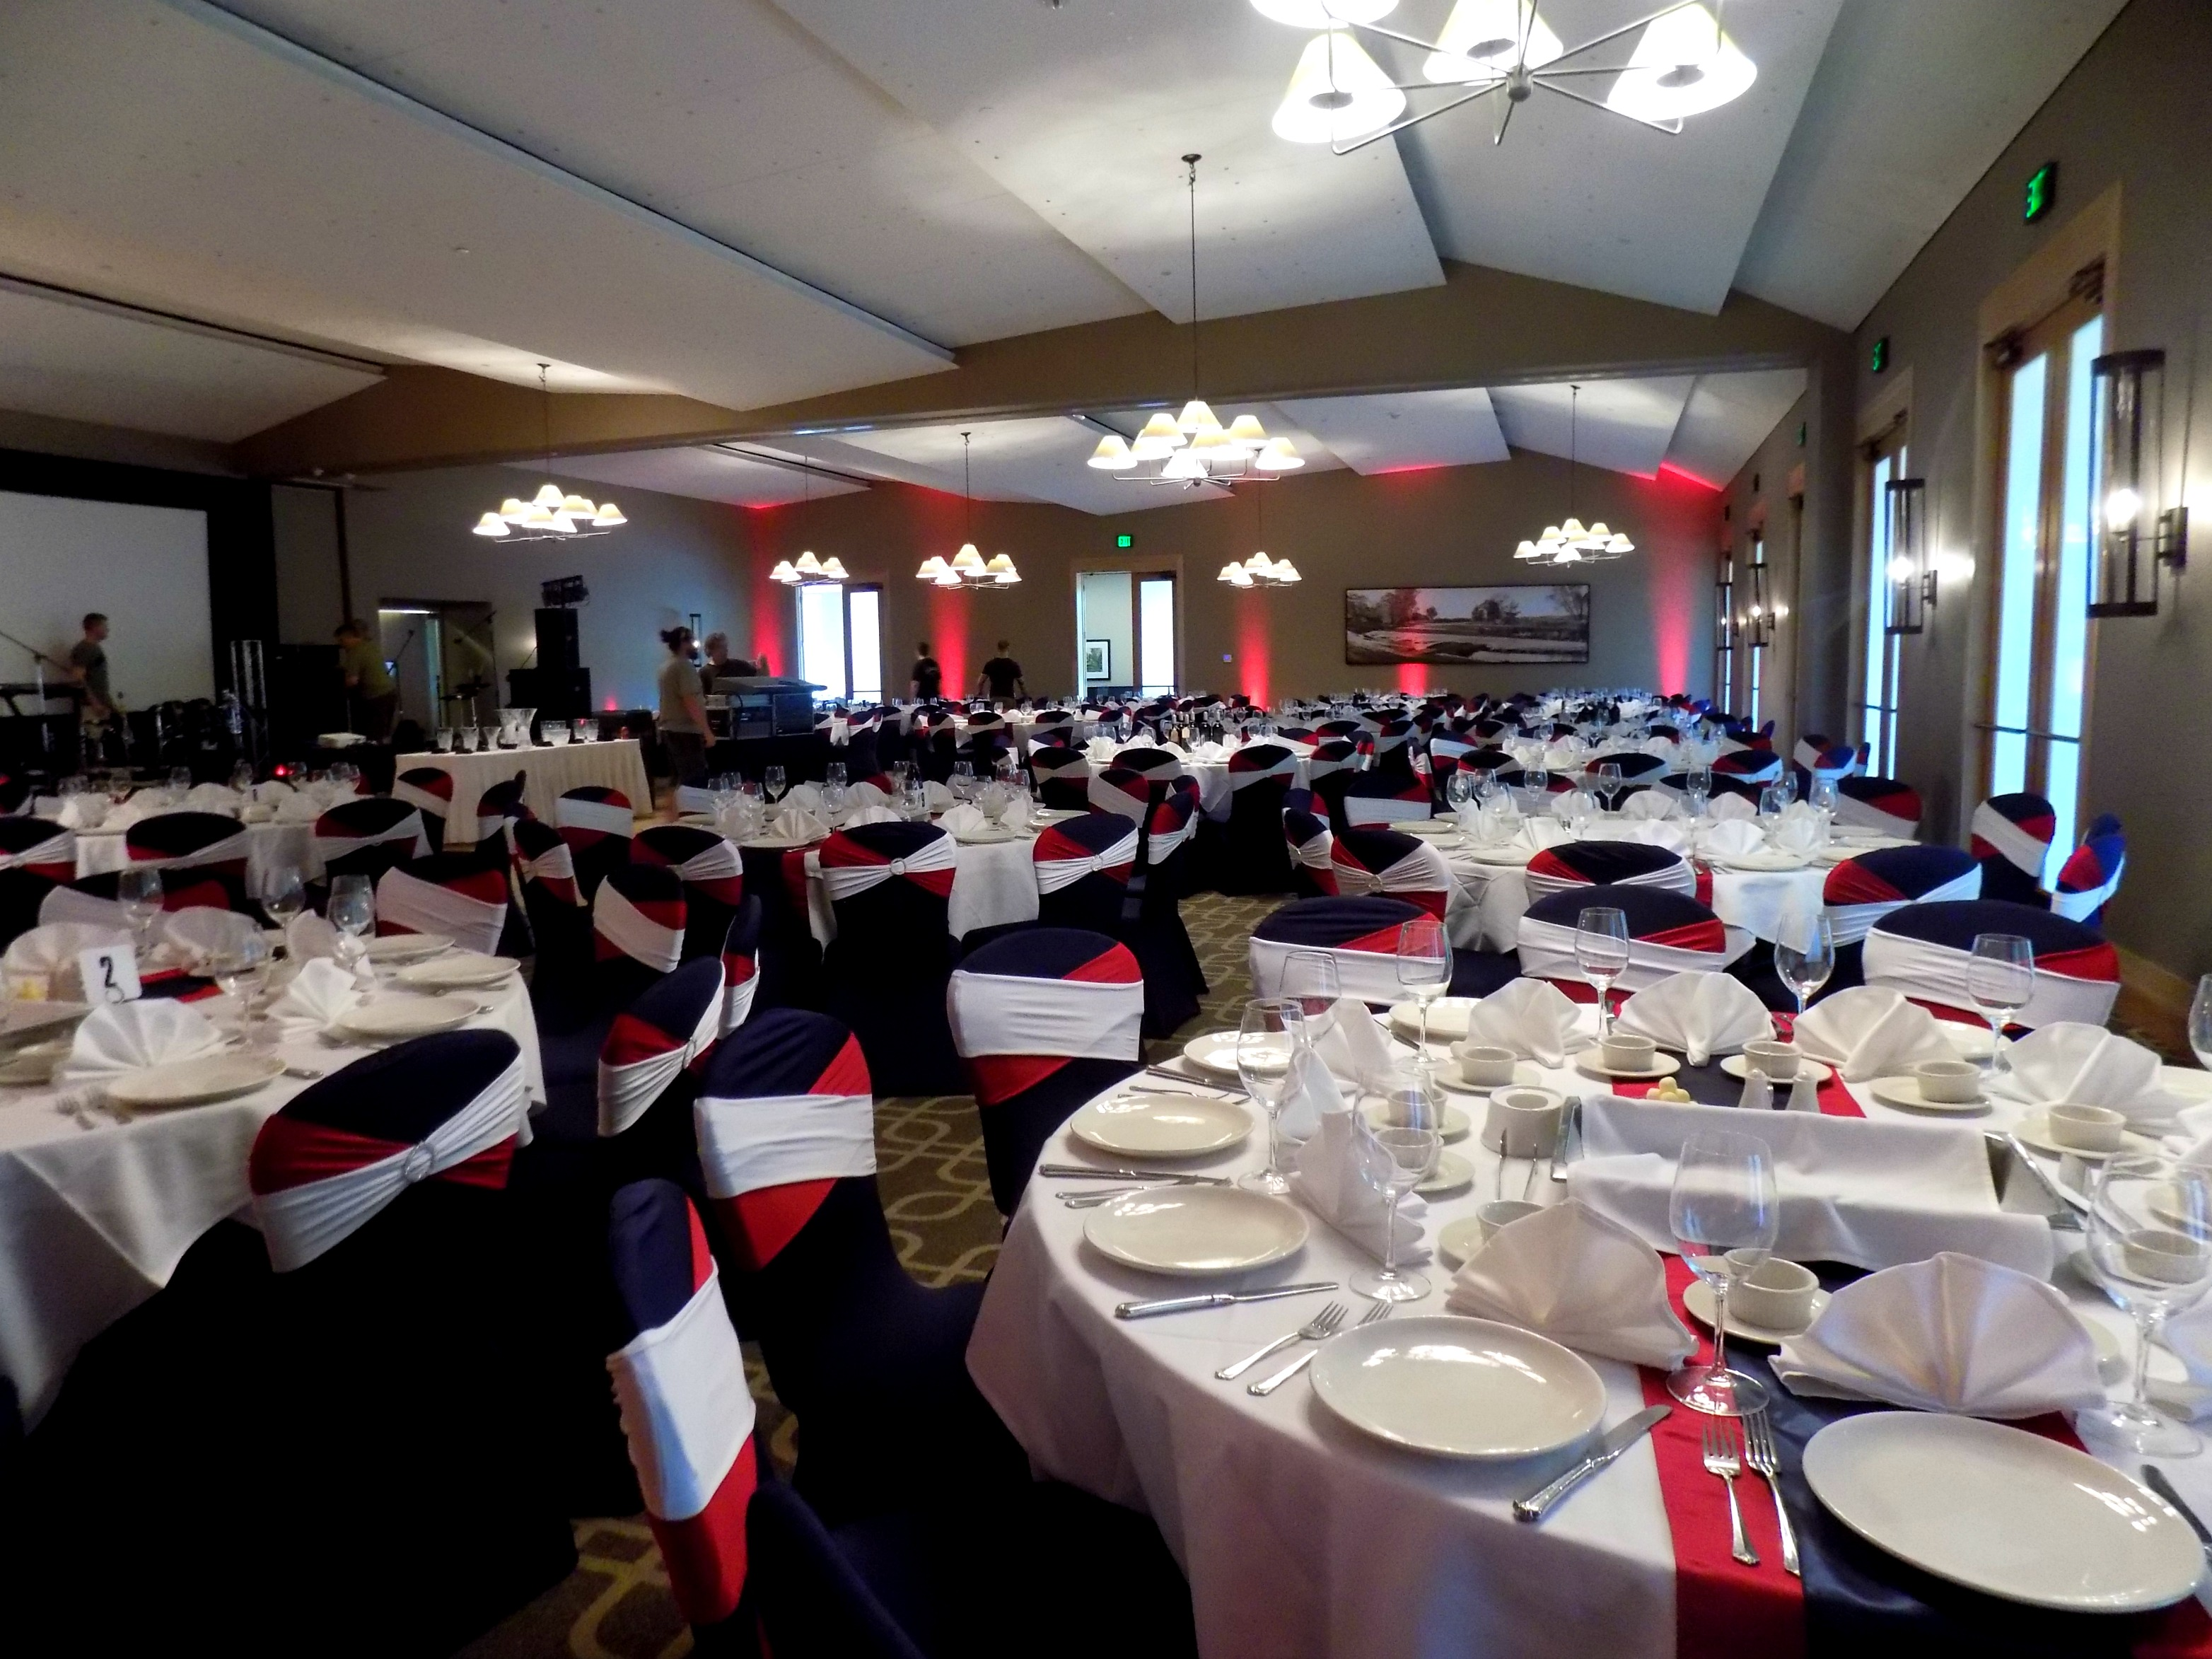 Red White and Blue decor for an all-America fundraising gala at Hazeltine National Golf Club